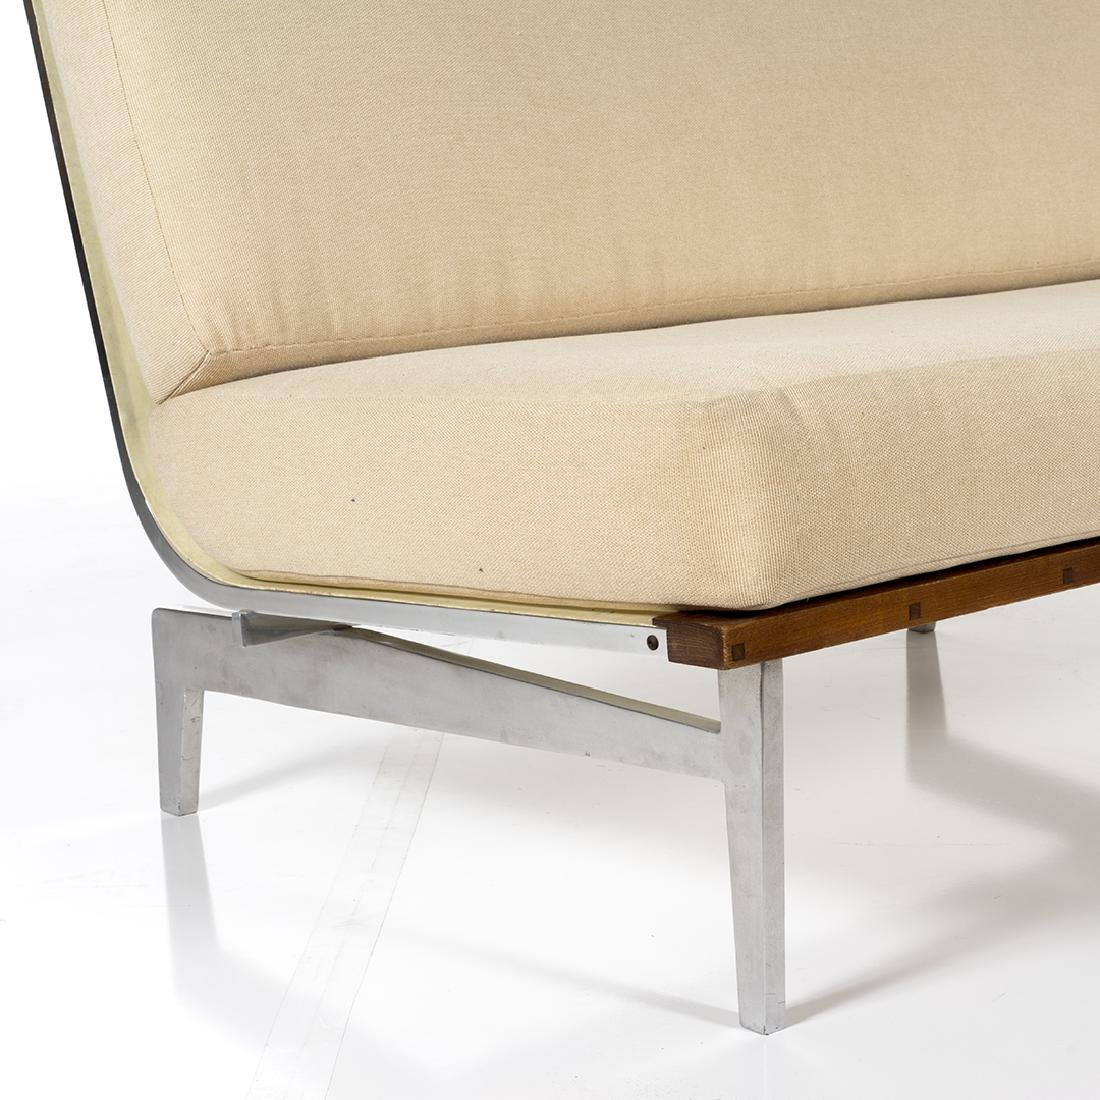 Lee DeSell Architectural Sofa - 7